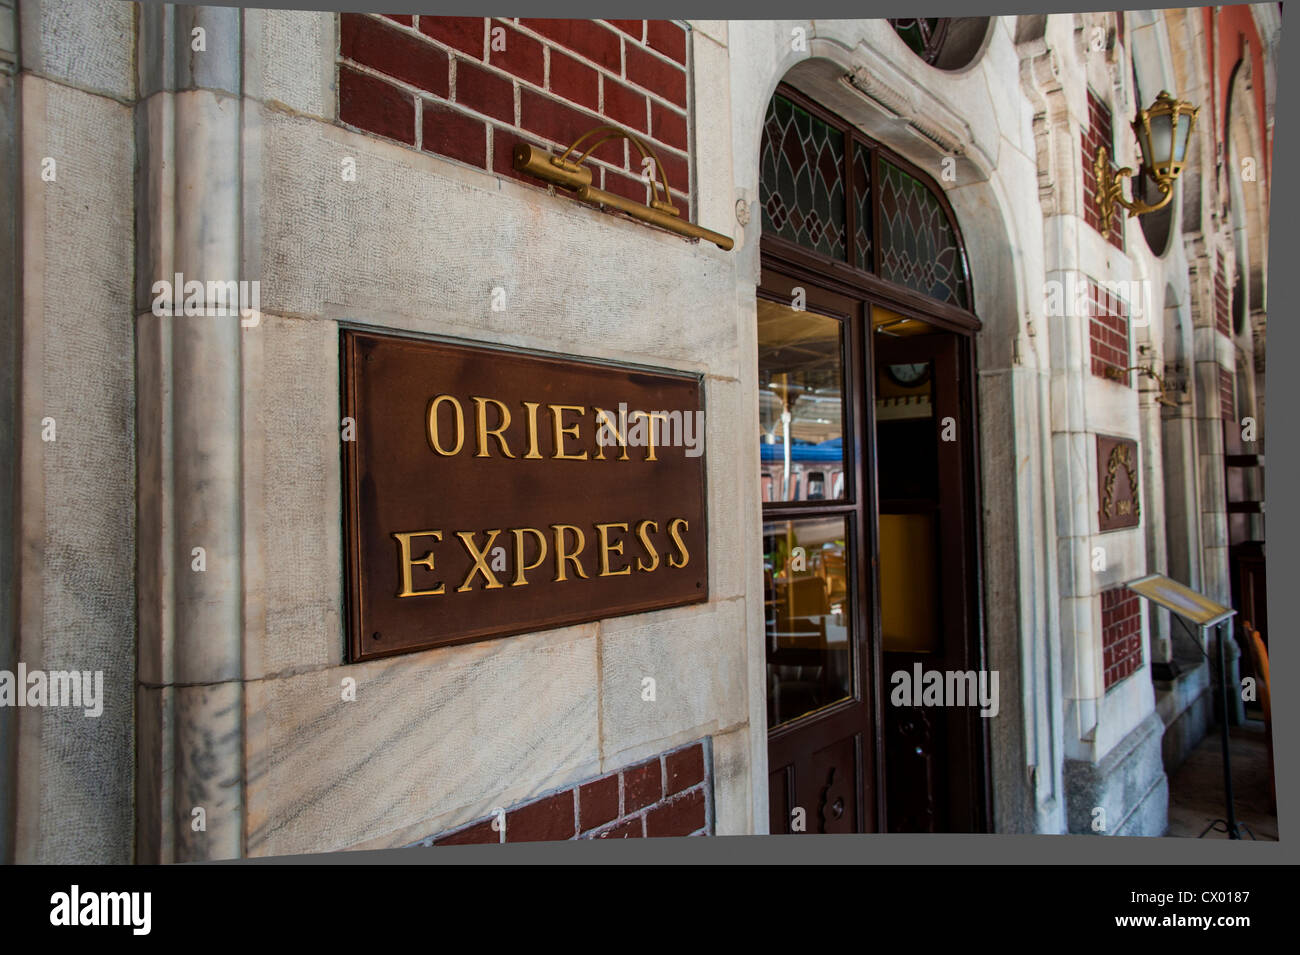 world famous Sirkeci station the terminal for the Oriental Express - Stock Image